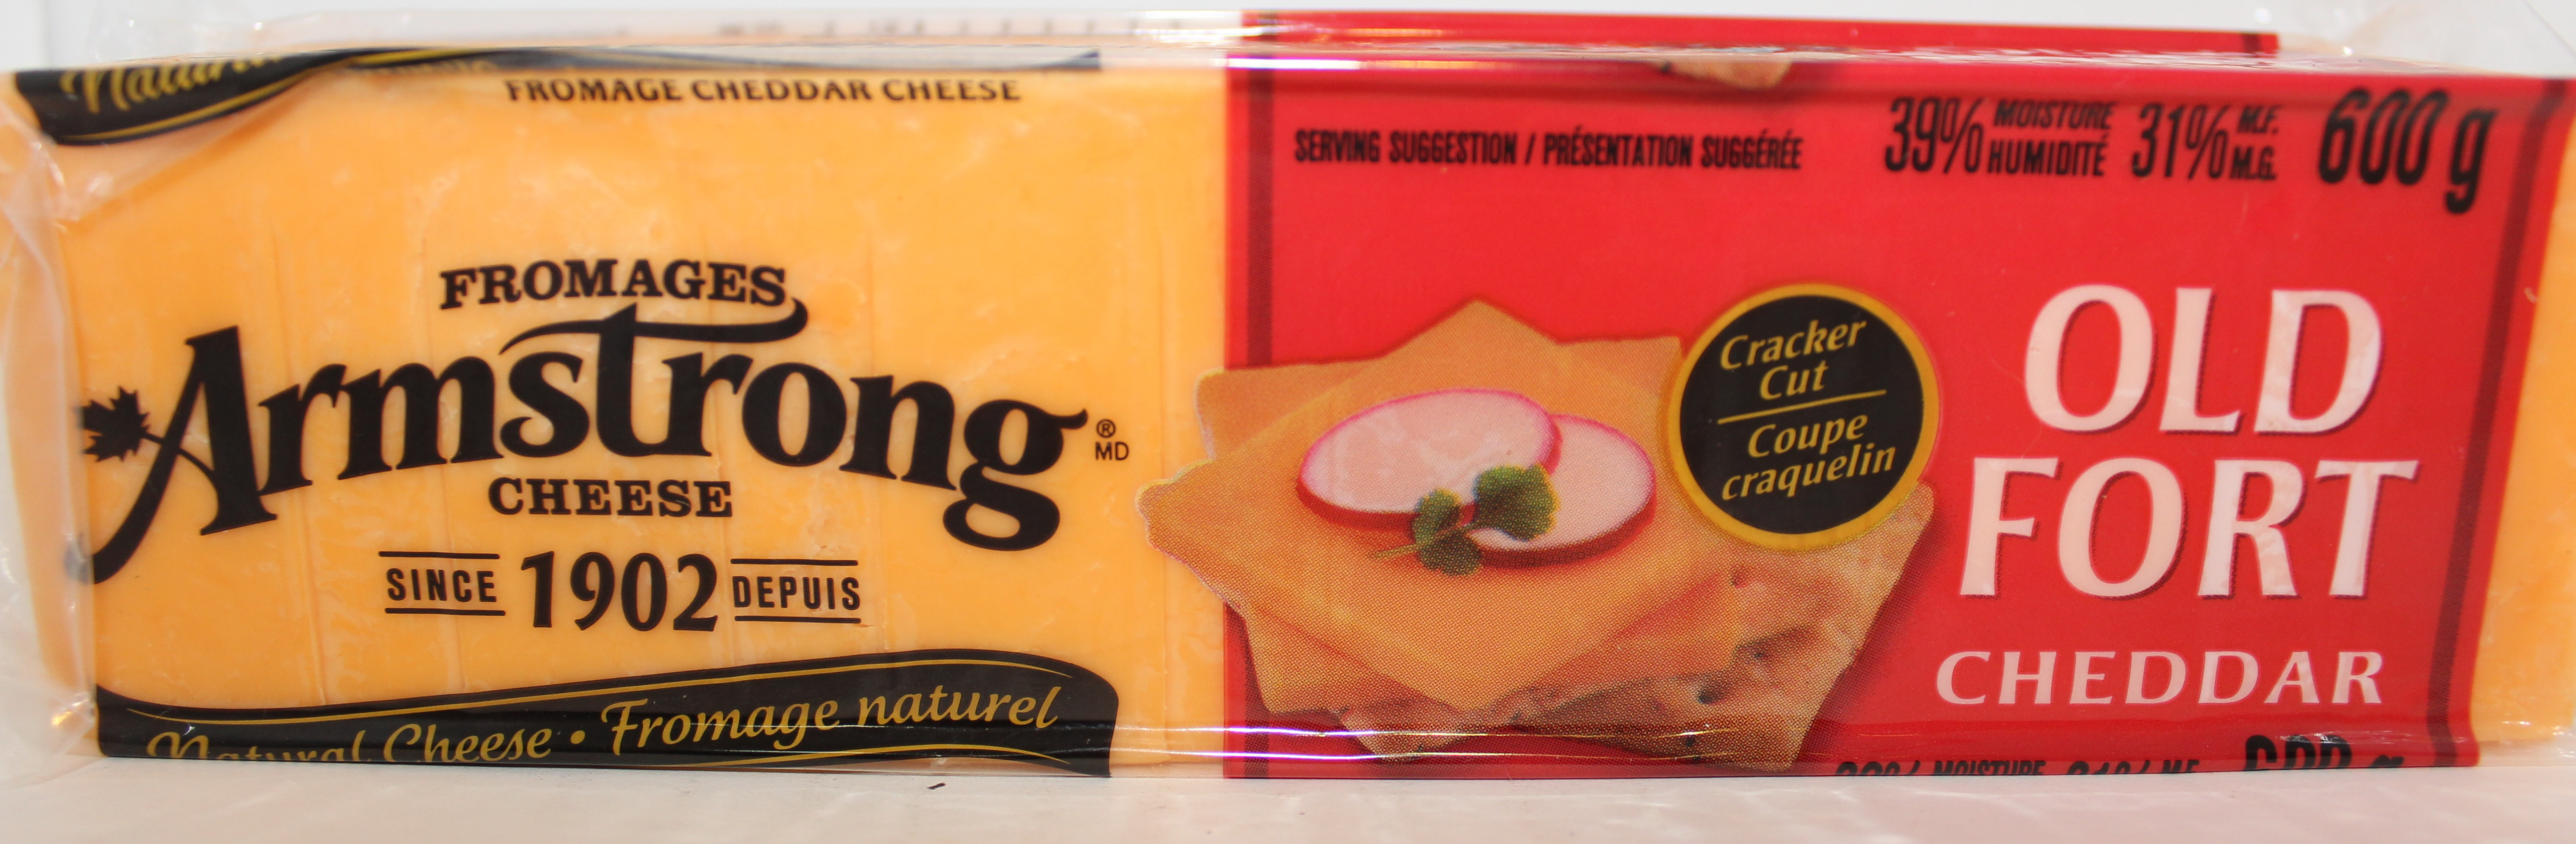 CHEESE ARMSTRONG AGED CHEDDAR ORANGE 600G